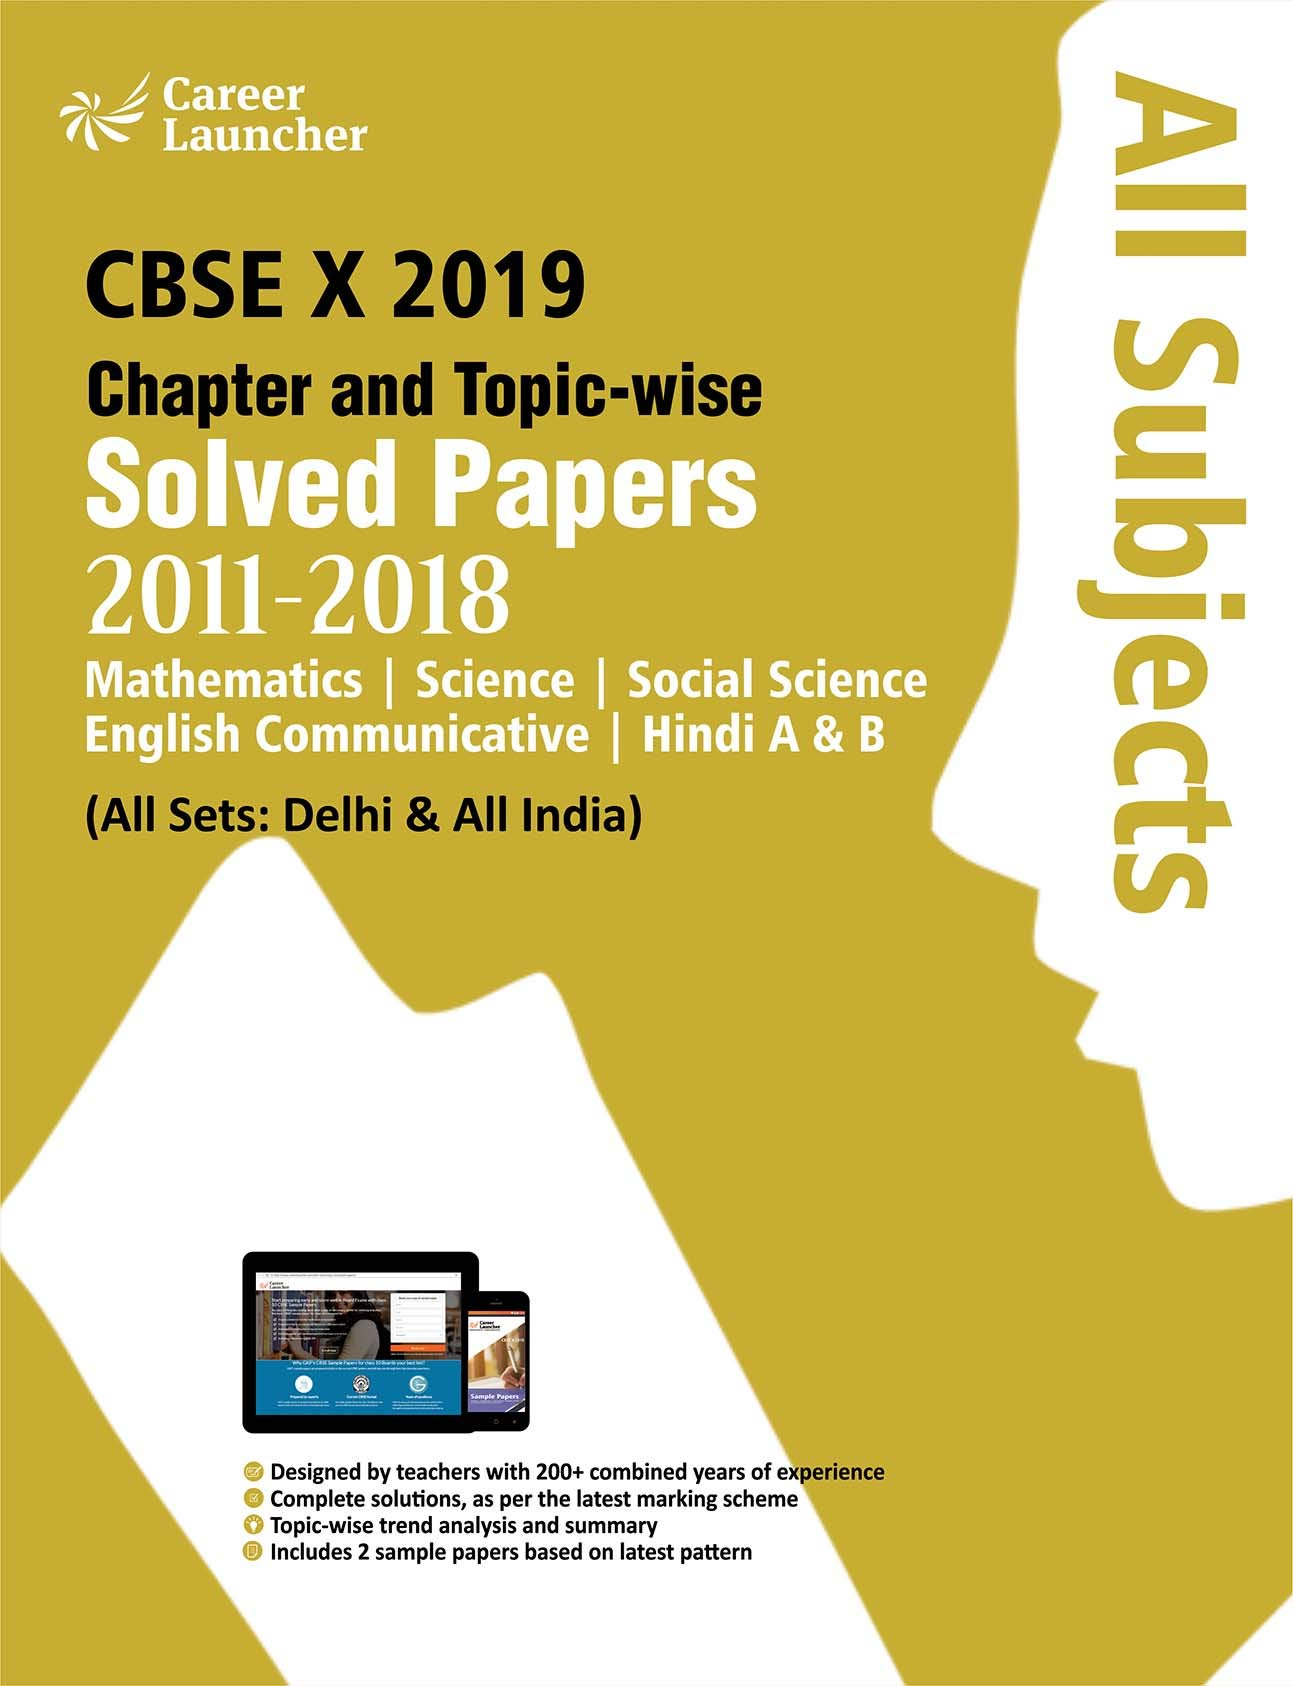 CBSE Class X 2019 - Chapter and Topic-wise Solved Papers 2011-2018